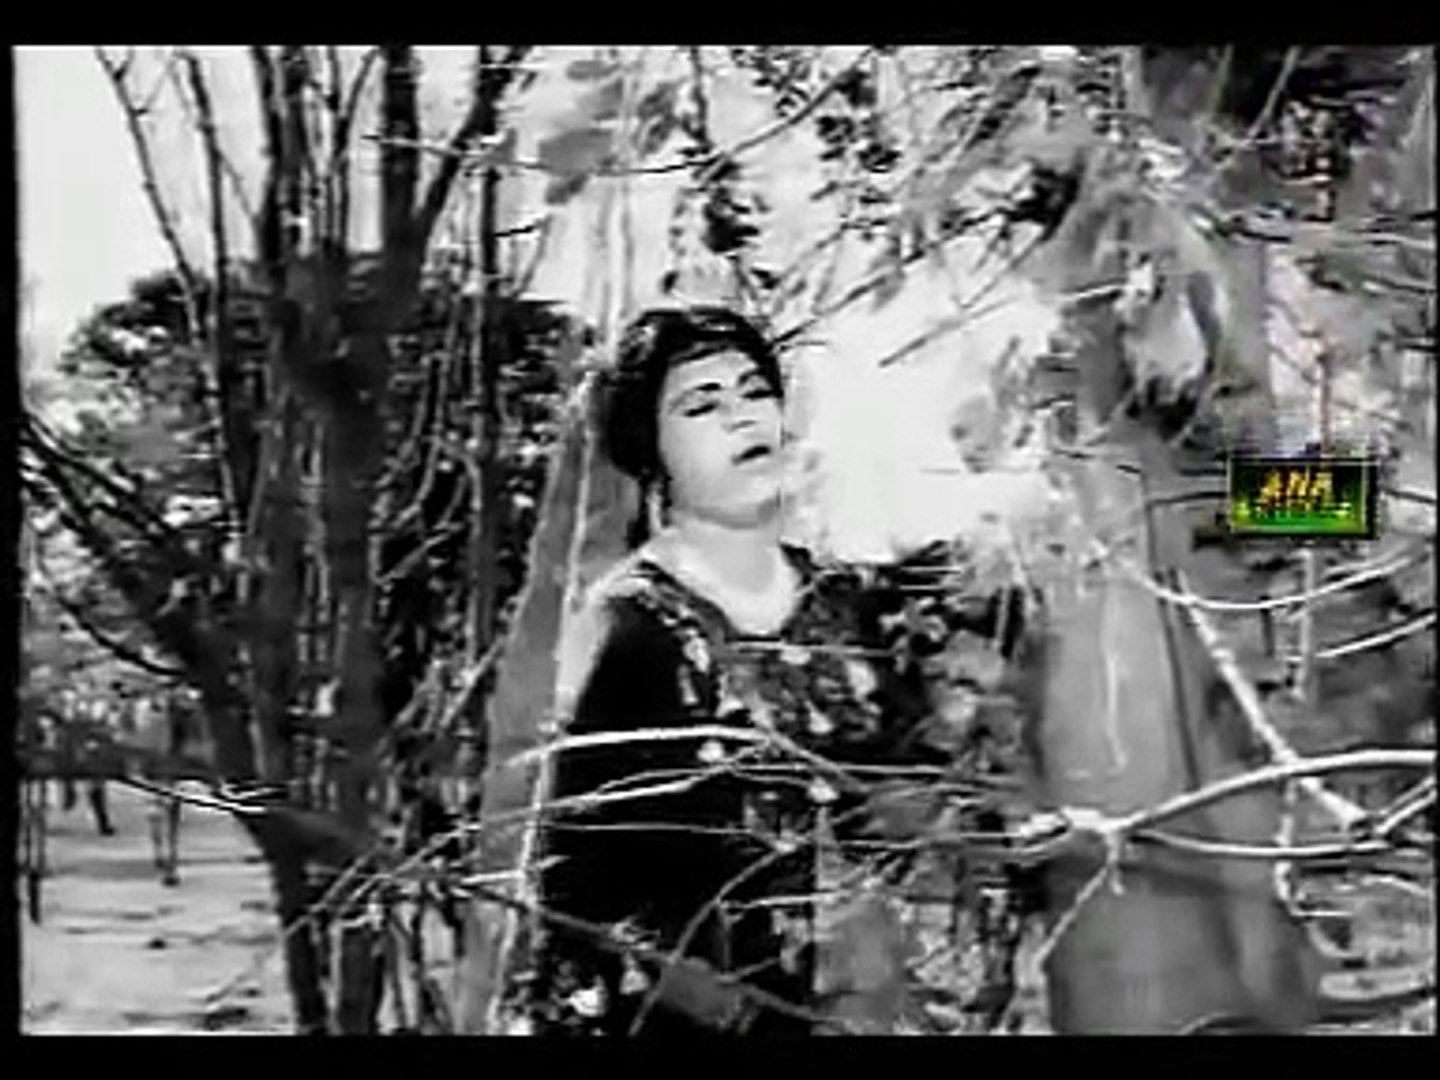 NOOR JAHAN SATHON KANU PHERIYAN NI GENTERMAN REMIX YouTube, Whatsapp Status Video, Best WhatsApp Sta